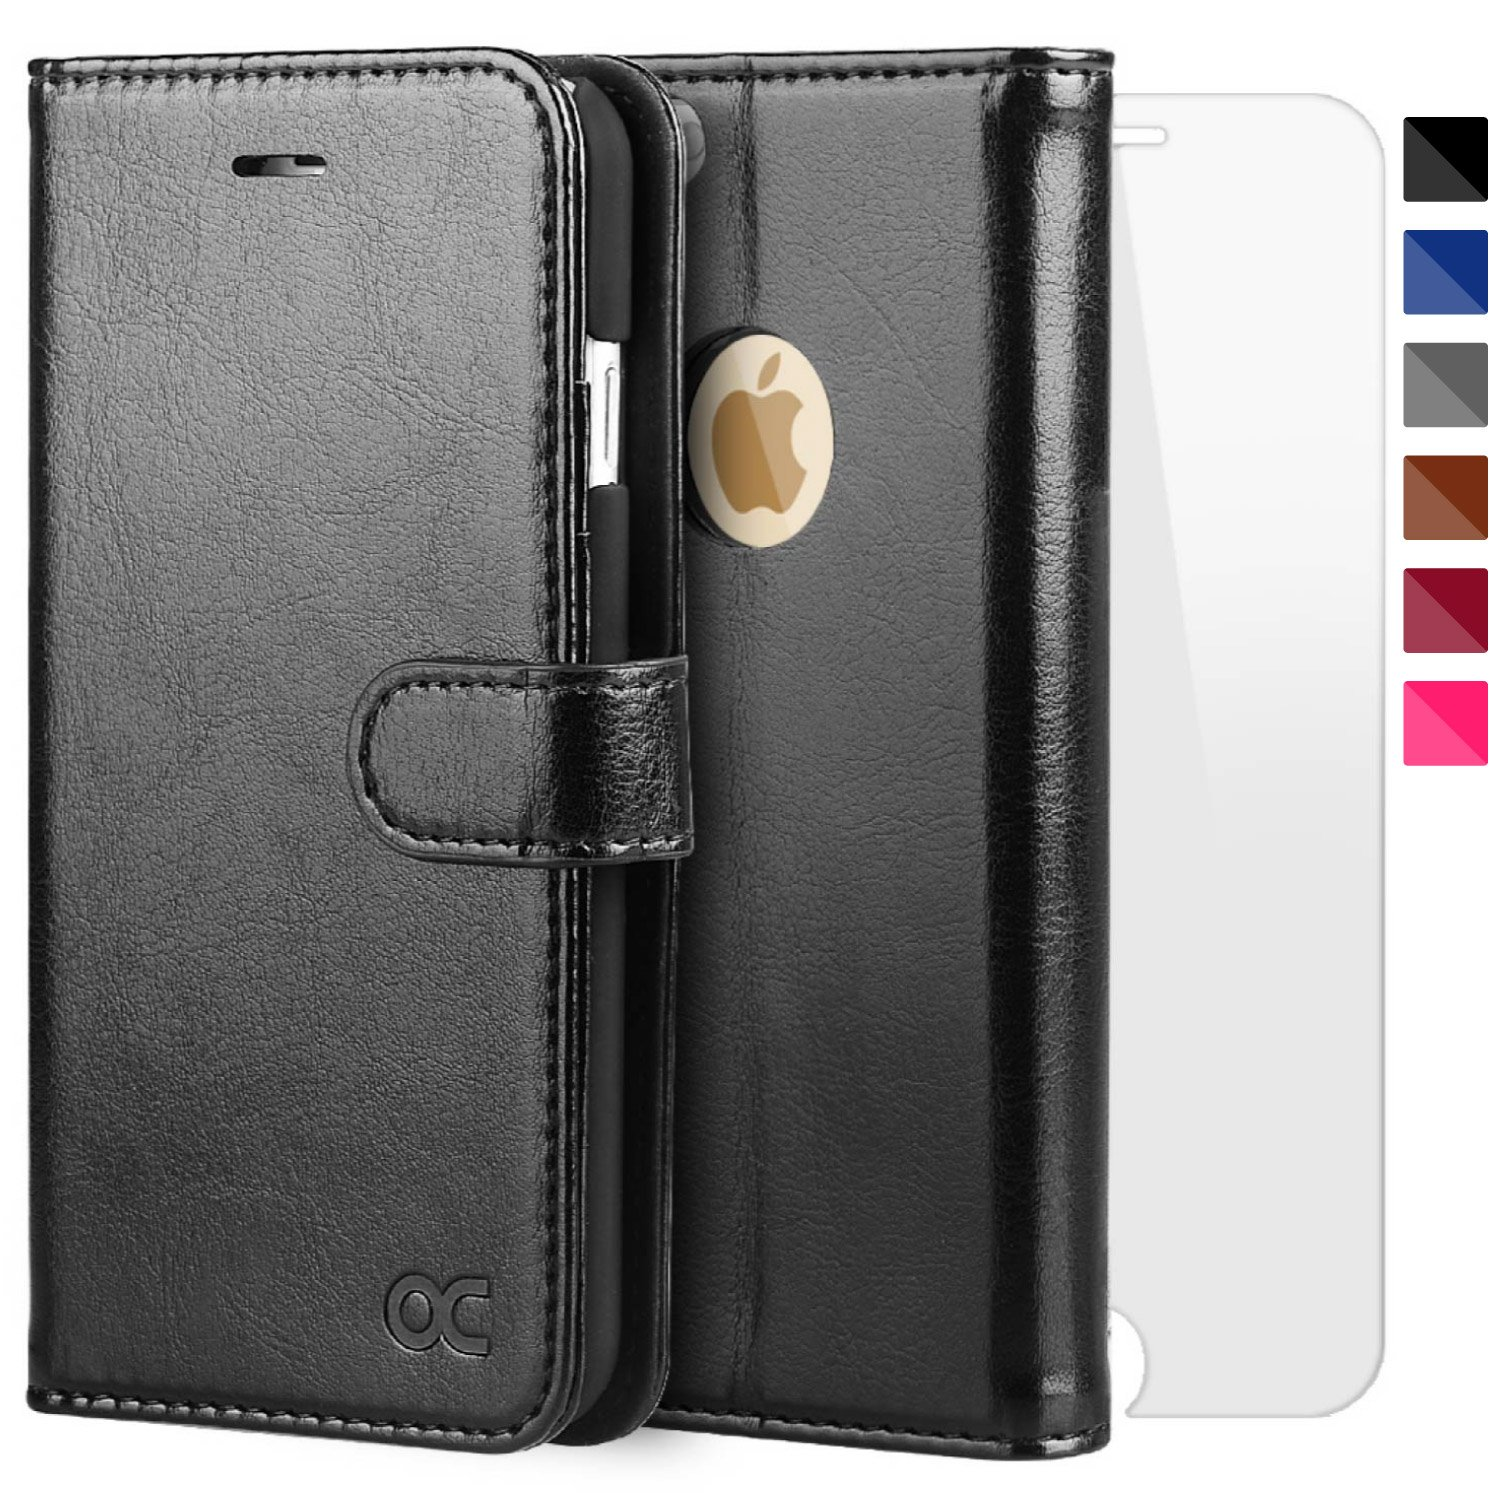 OCASE iPhone 6S Case [Free Screen Protector Included] Leather Wallet Flip Case for iPhone 6 / 6S Devices 4.7 Inch - Blue iPhone 6 / 6S wallet case